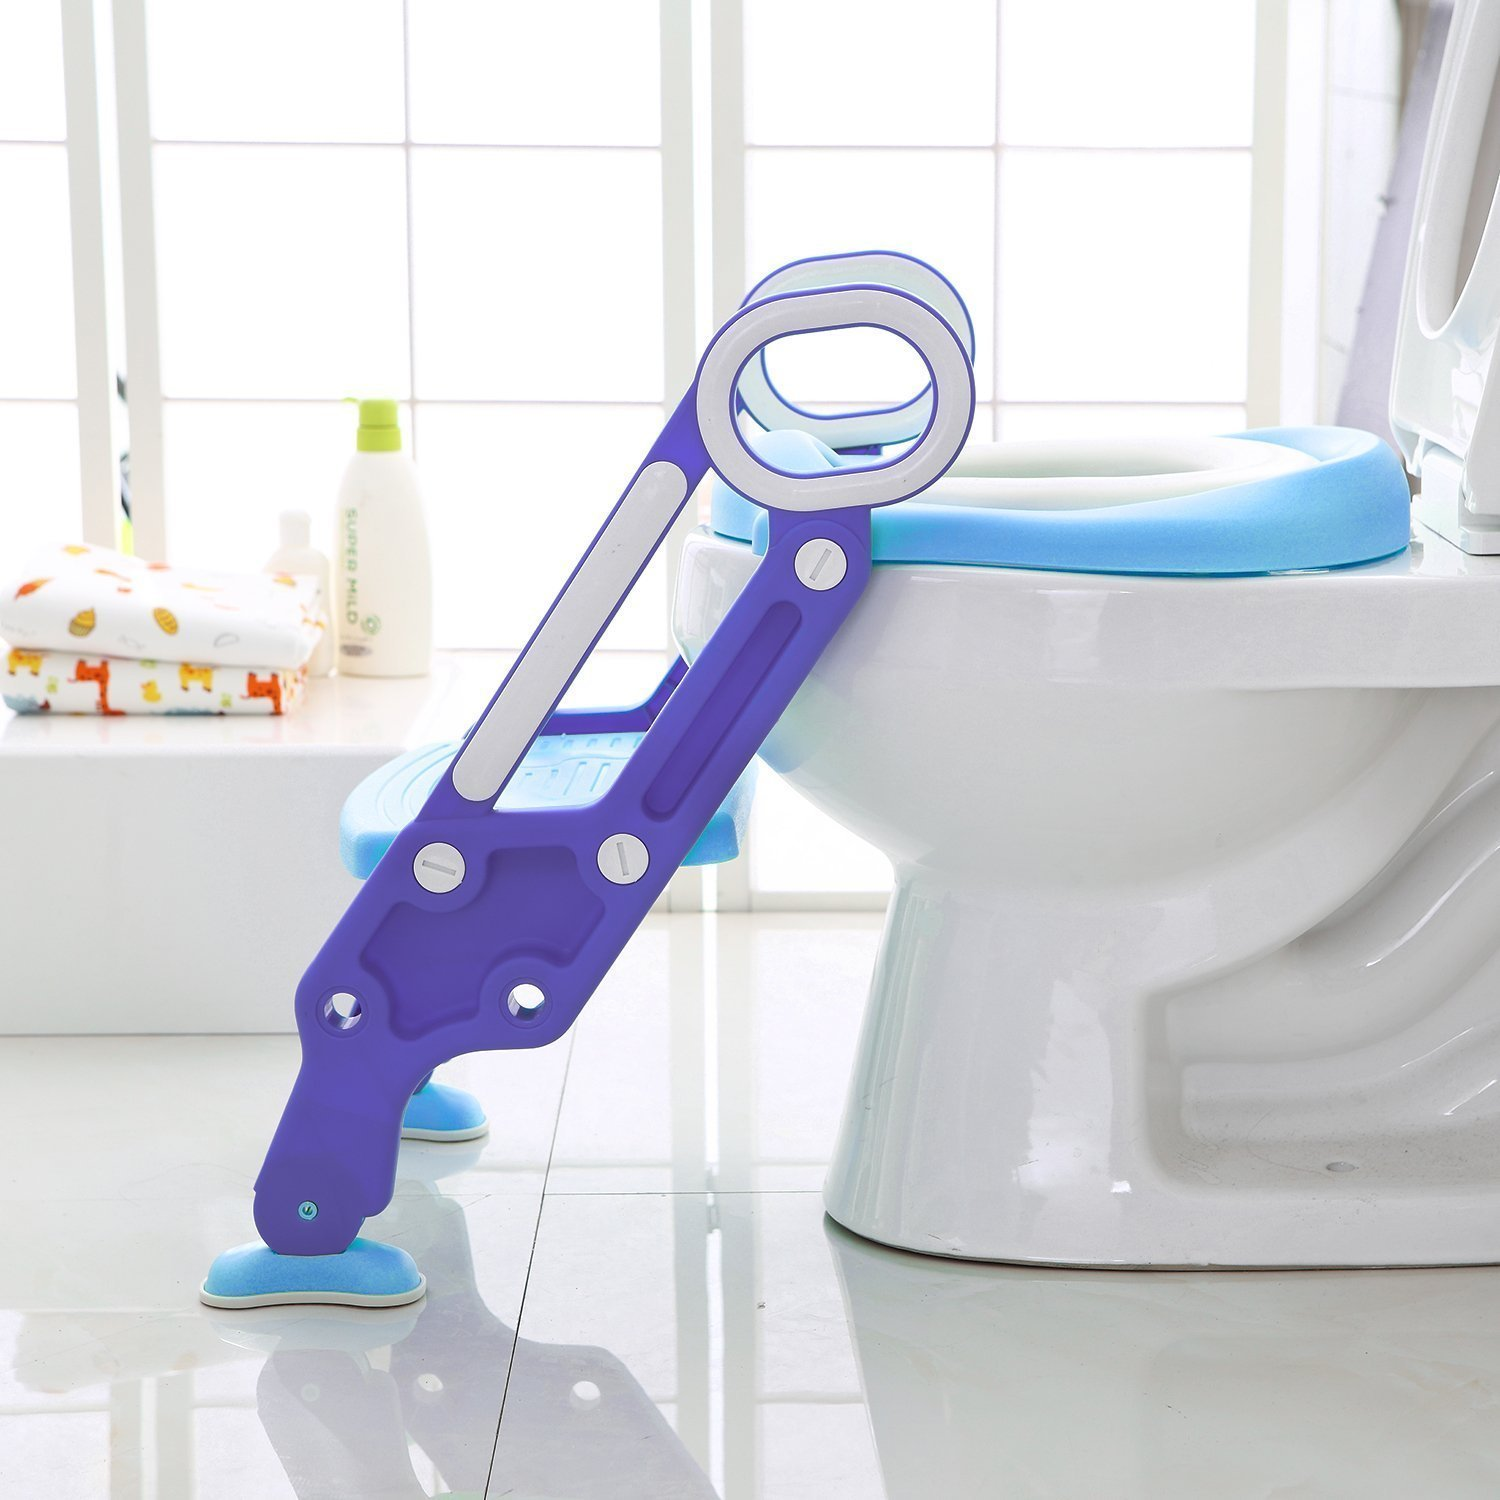 Potty Toilet Trainer Seat with Step Stool Ladder, Adjustable Toddler Toilet Ladder Trainer with Handles & Soft Cushion ,Non-Slip (Blue) by jocabo